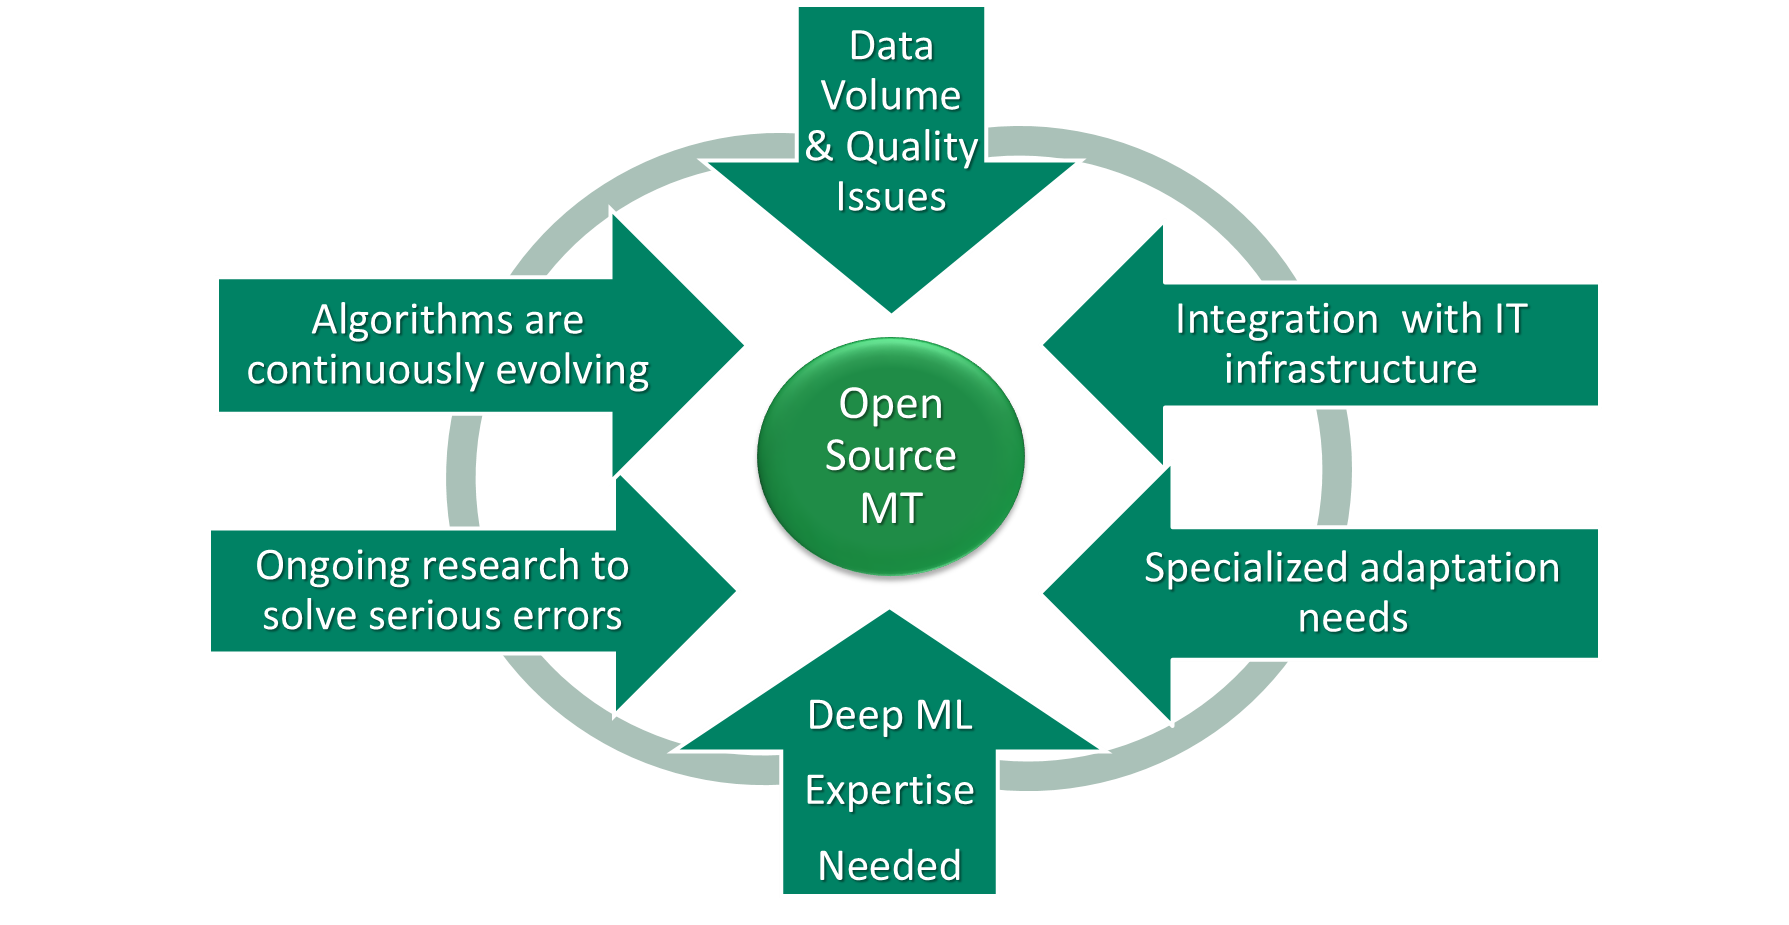 Open Source Side Image